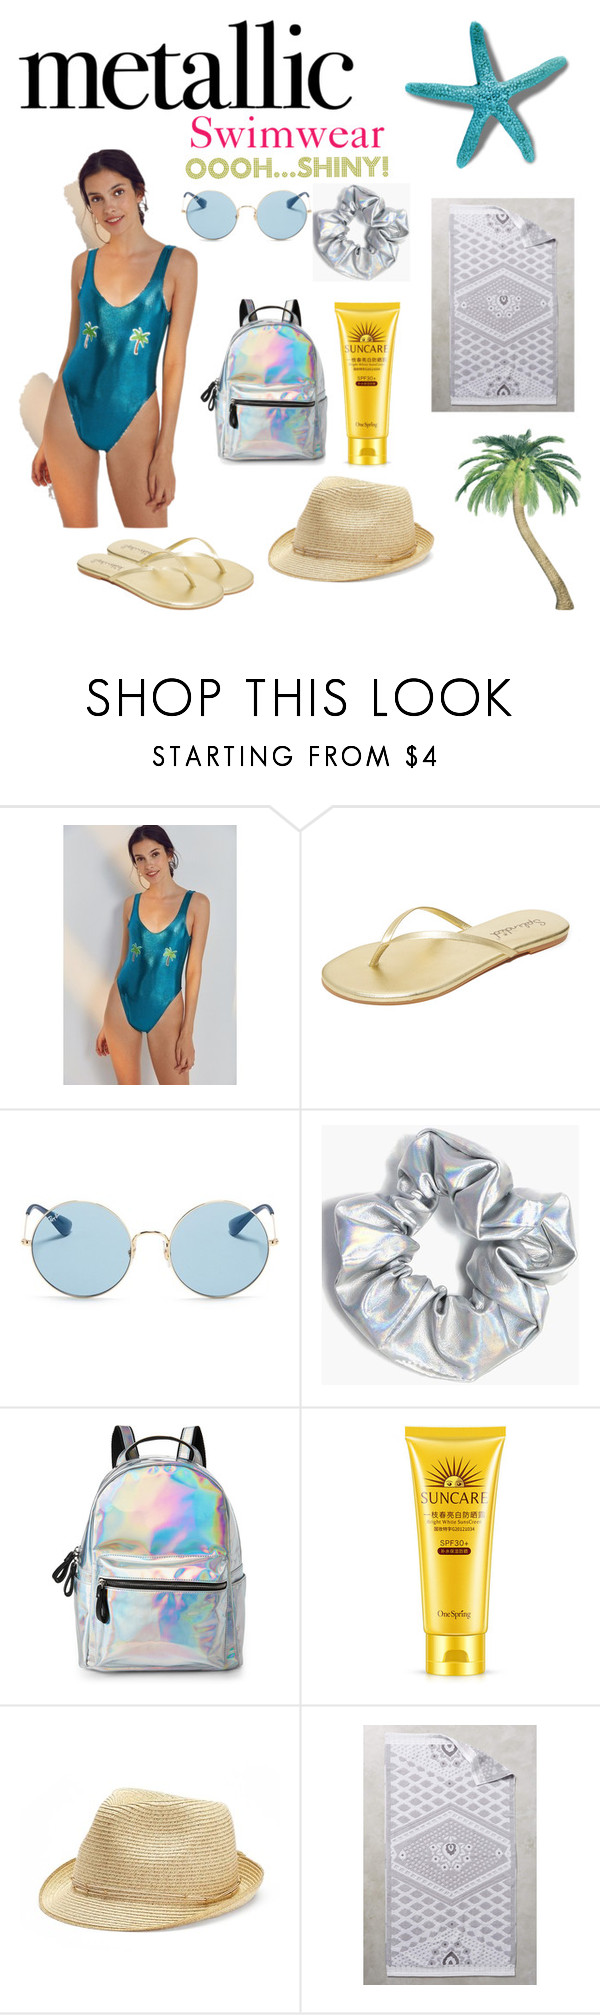 """Metallic Swimwear...Shiny!"" by braceface04 ❤ liked on Polyvore featuring Private Party, Splendid, Ray-Ban, Boohoo, IMoshion, SONOMA Goods for Life and Anthropologie"